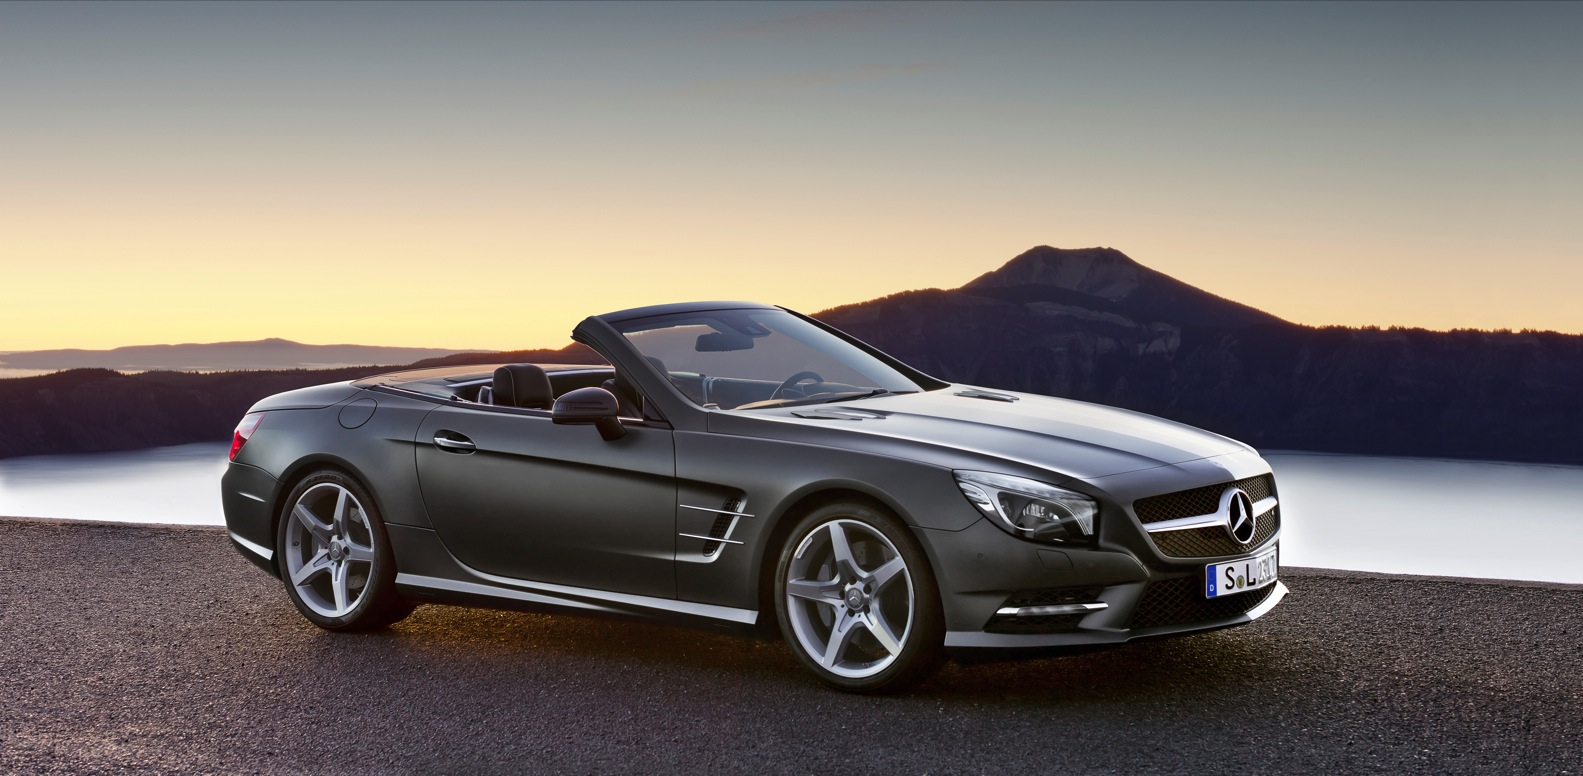 mercedes benz sl klasse r231 specs 2012 2013 2014 2015 2016 autoevolution. Black Bedroom Furniture Sets. Home Design Ideas